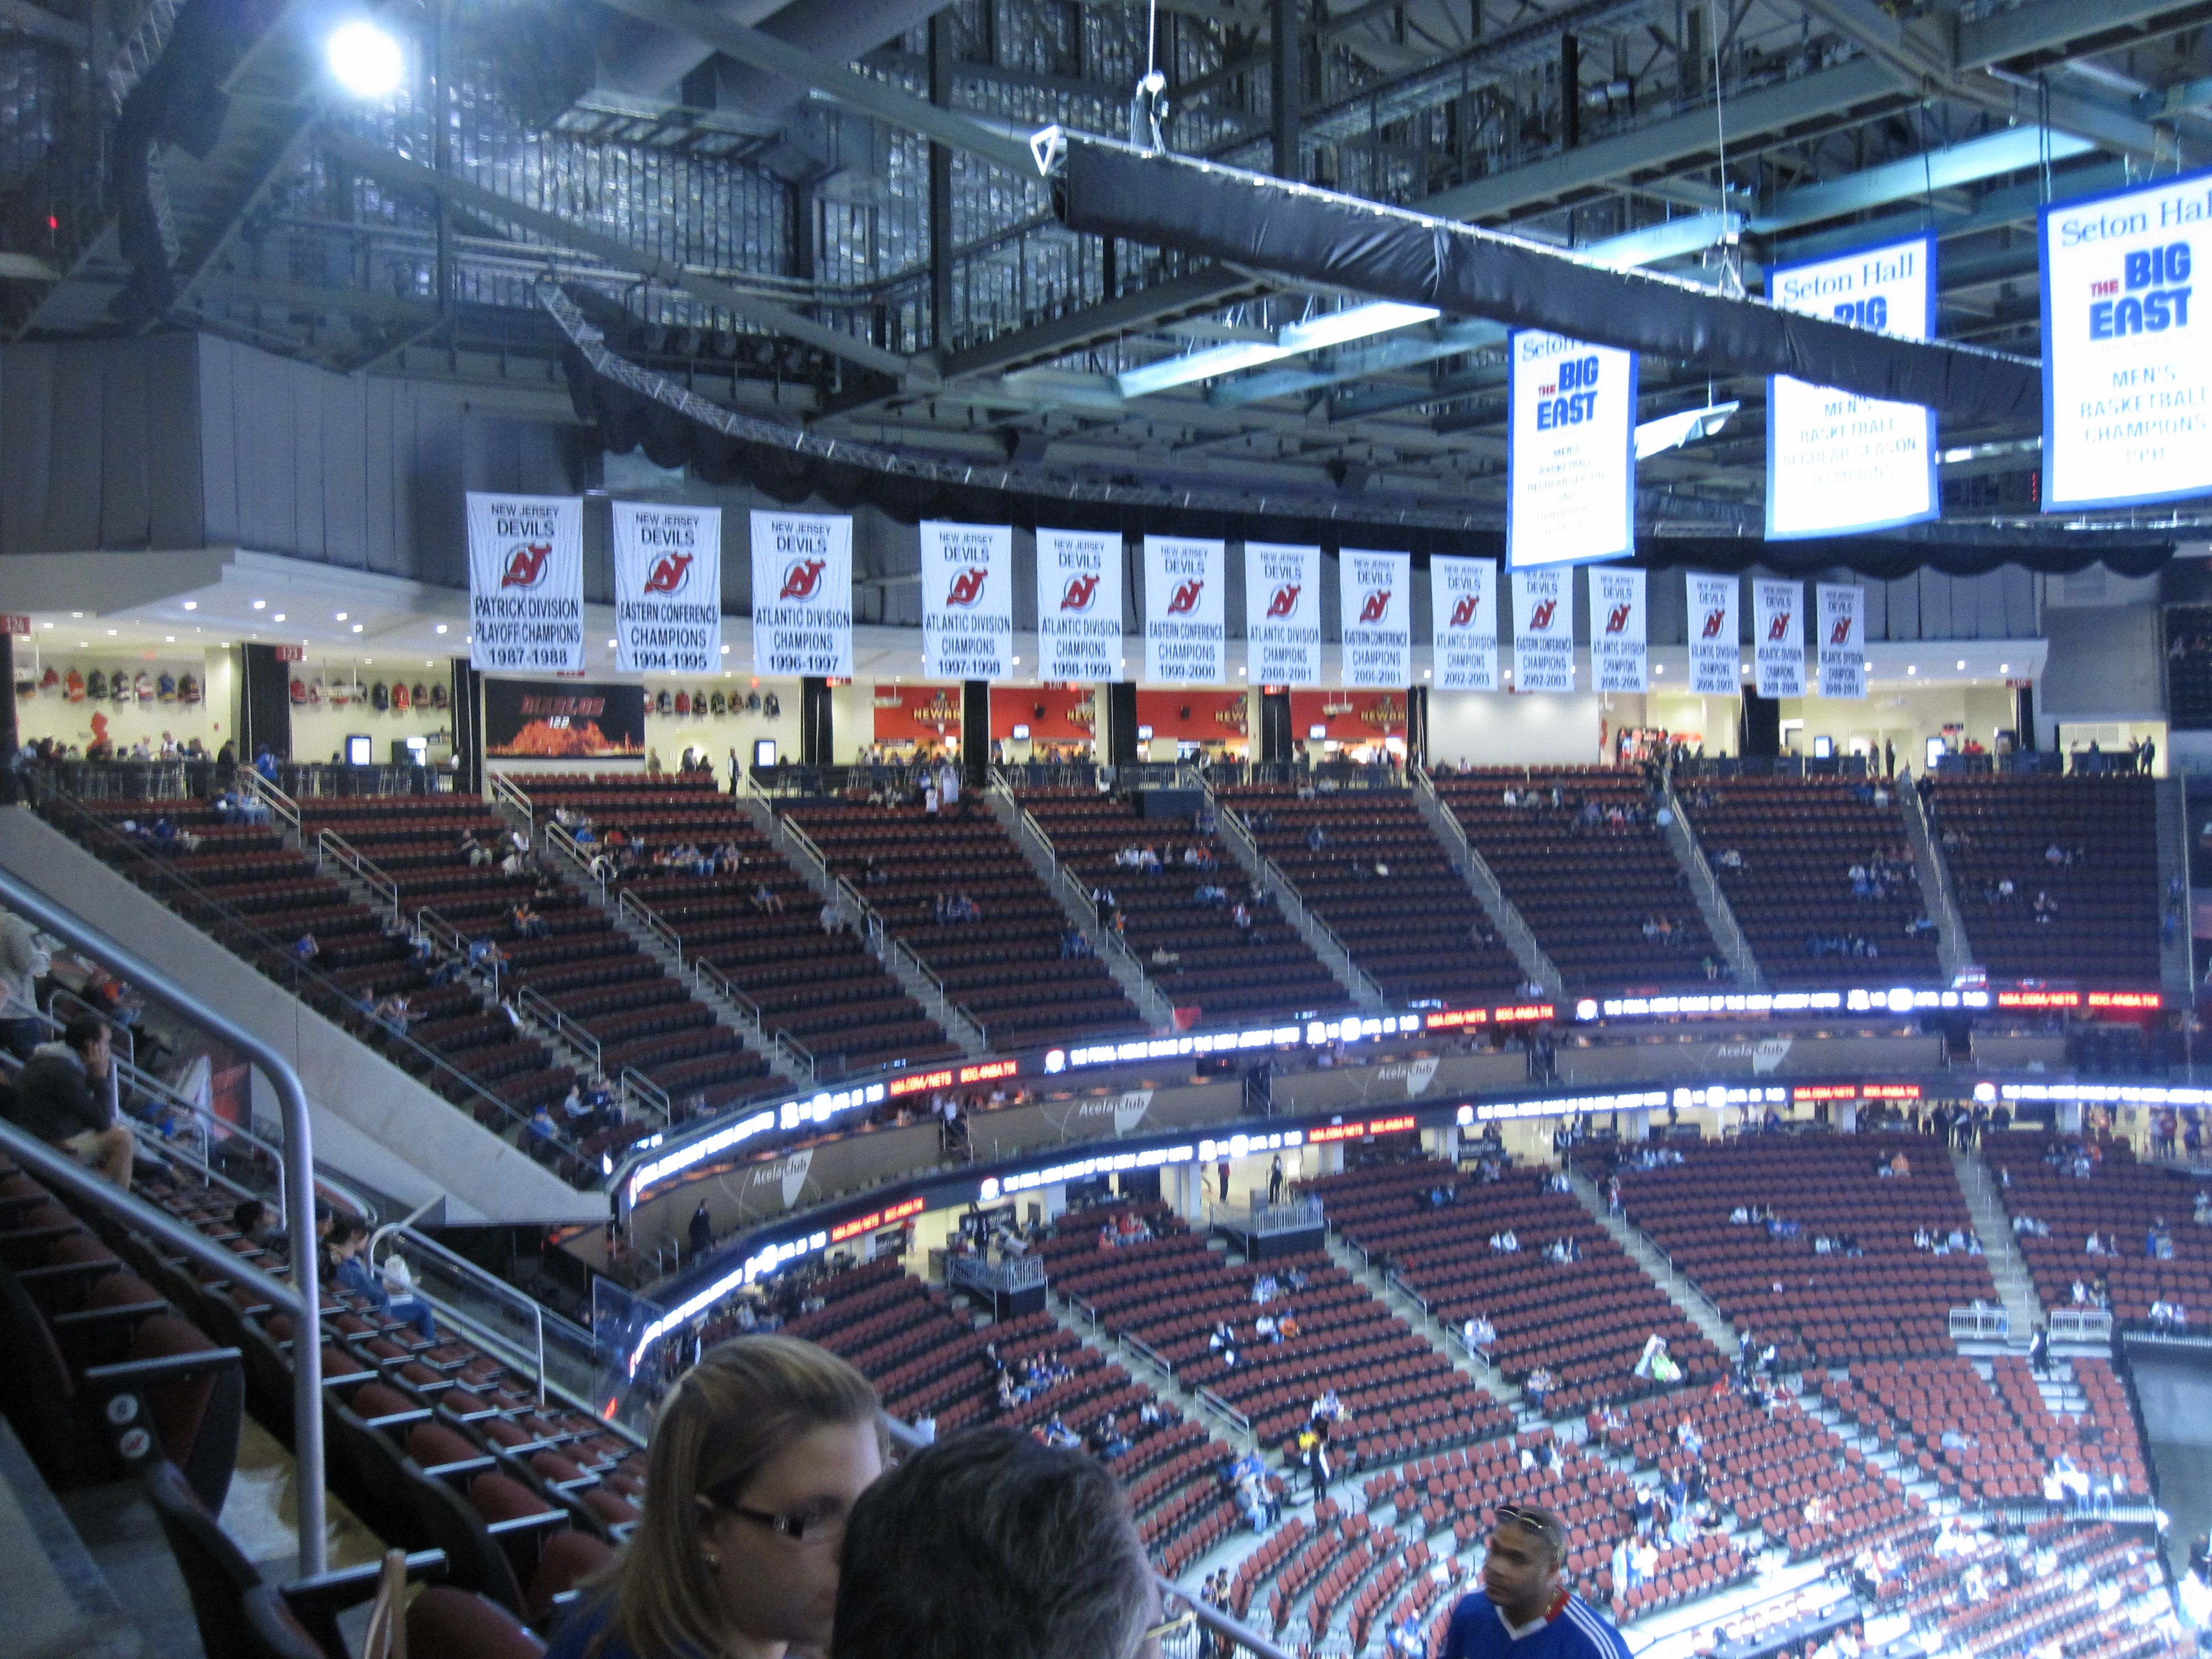 New Jersey Devils banners in the Prudential Center